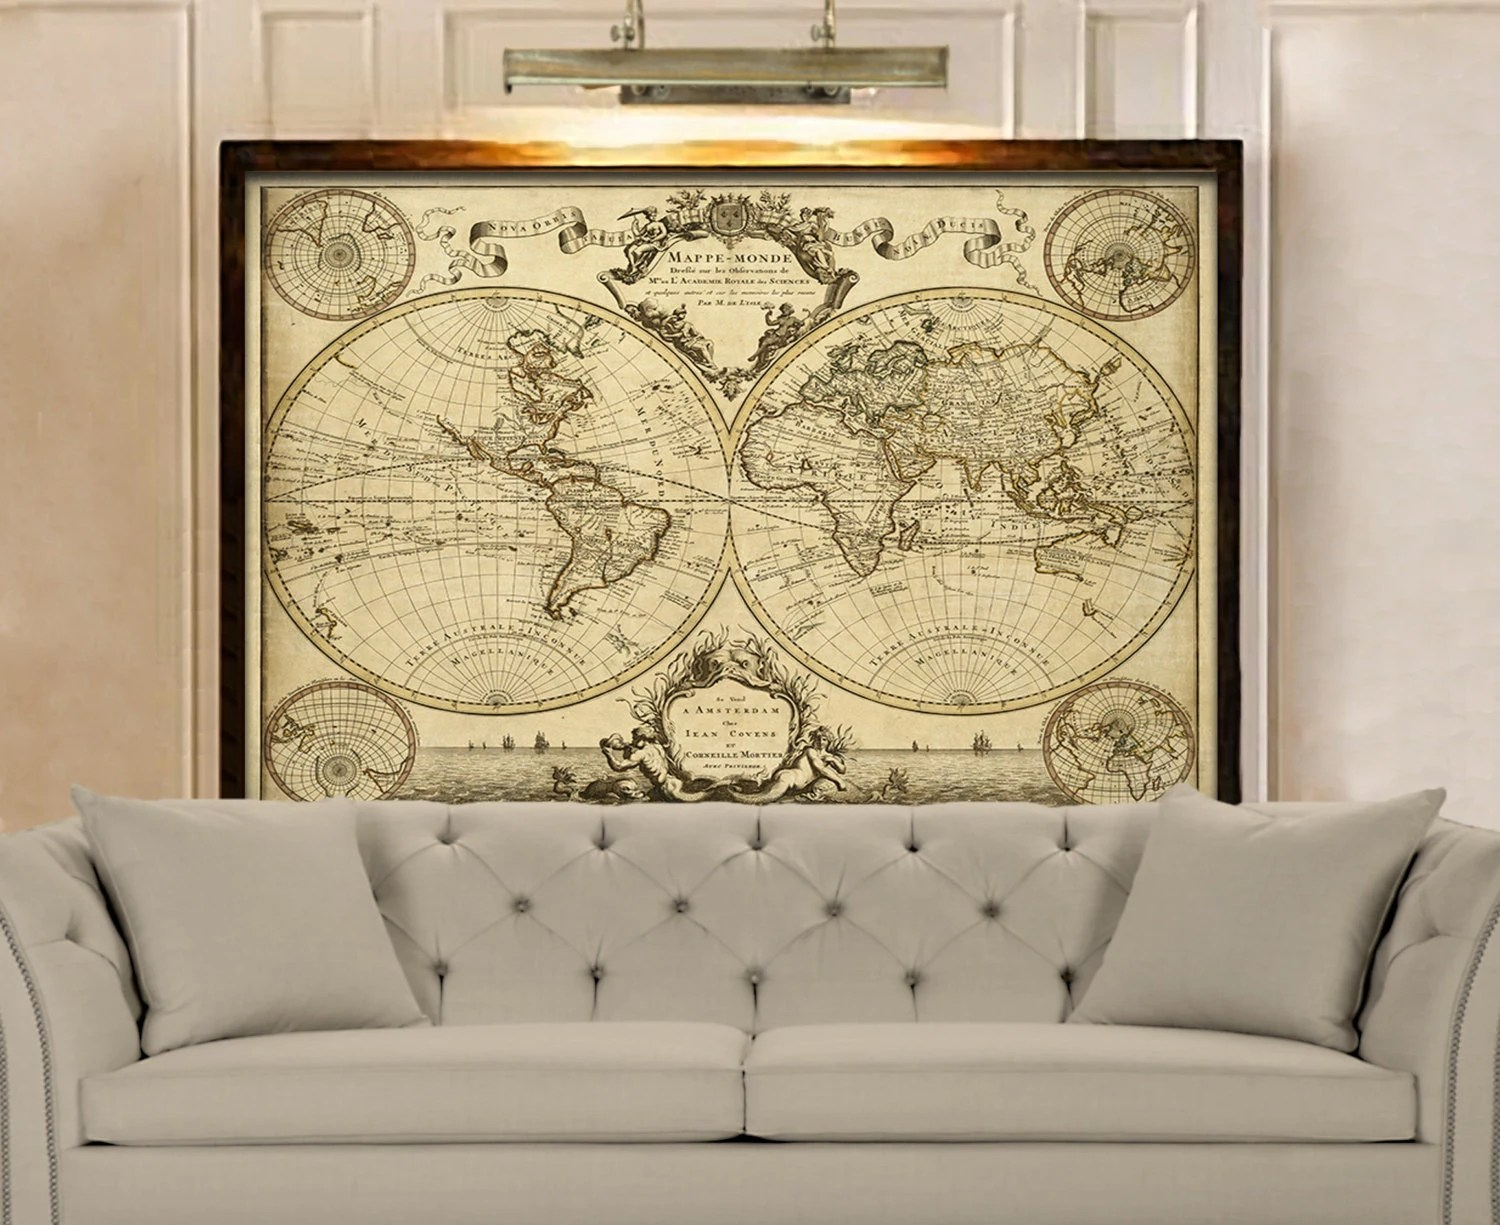 Sofa Bed Giant Malaysia Giant Historic World Map 1720 Old Antique Style World Map Fine Art